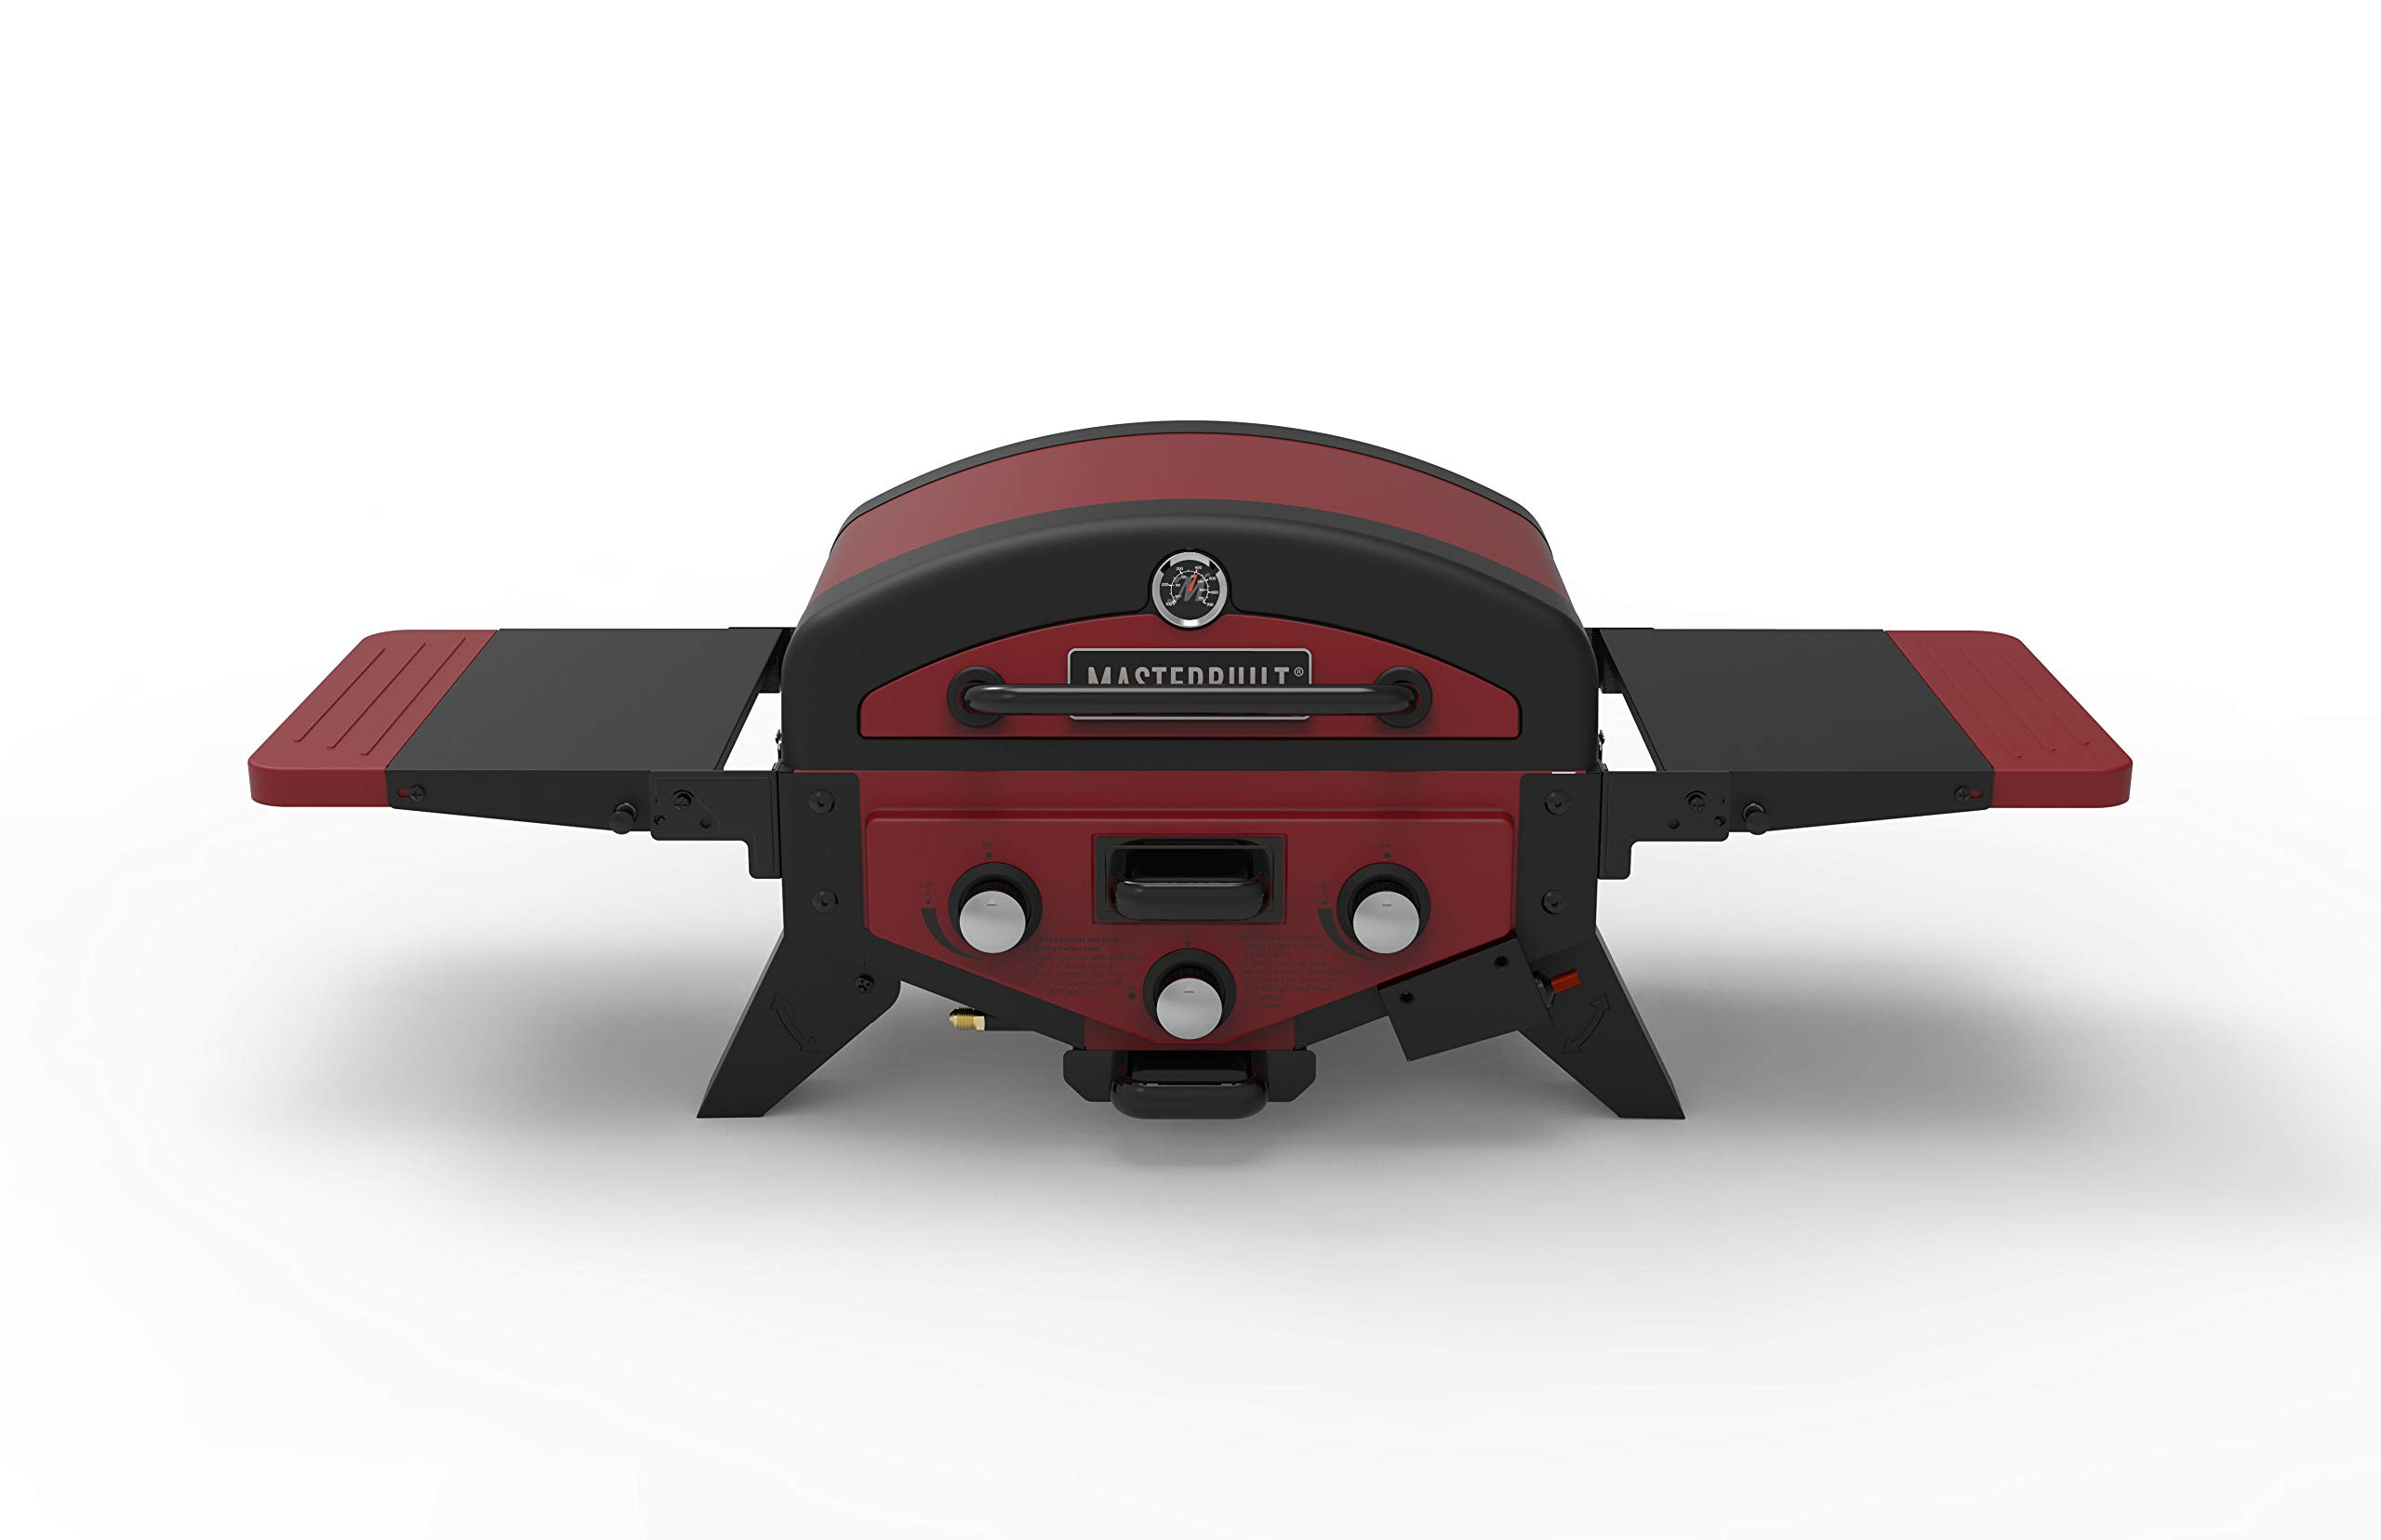 Masterbuilt MB20030619 MPG 300S Tabletop Gas Grill, Red